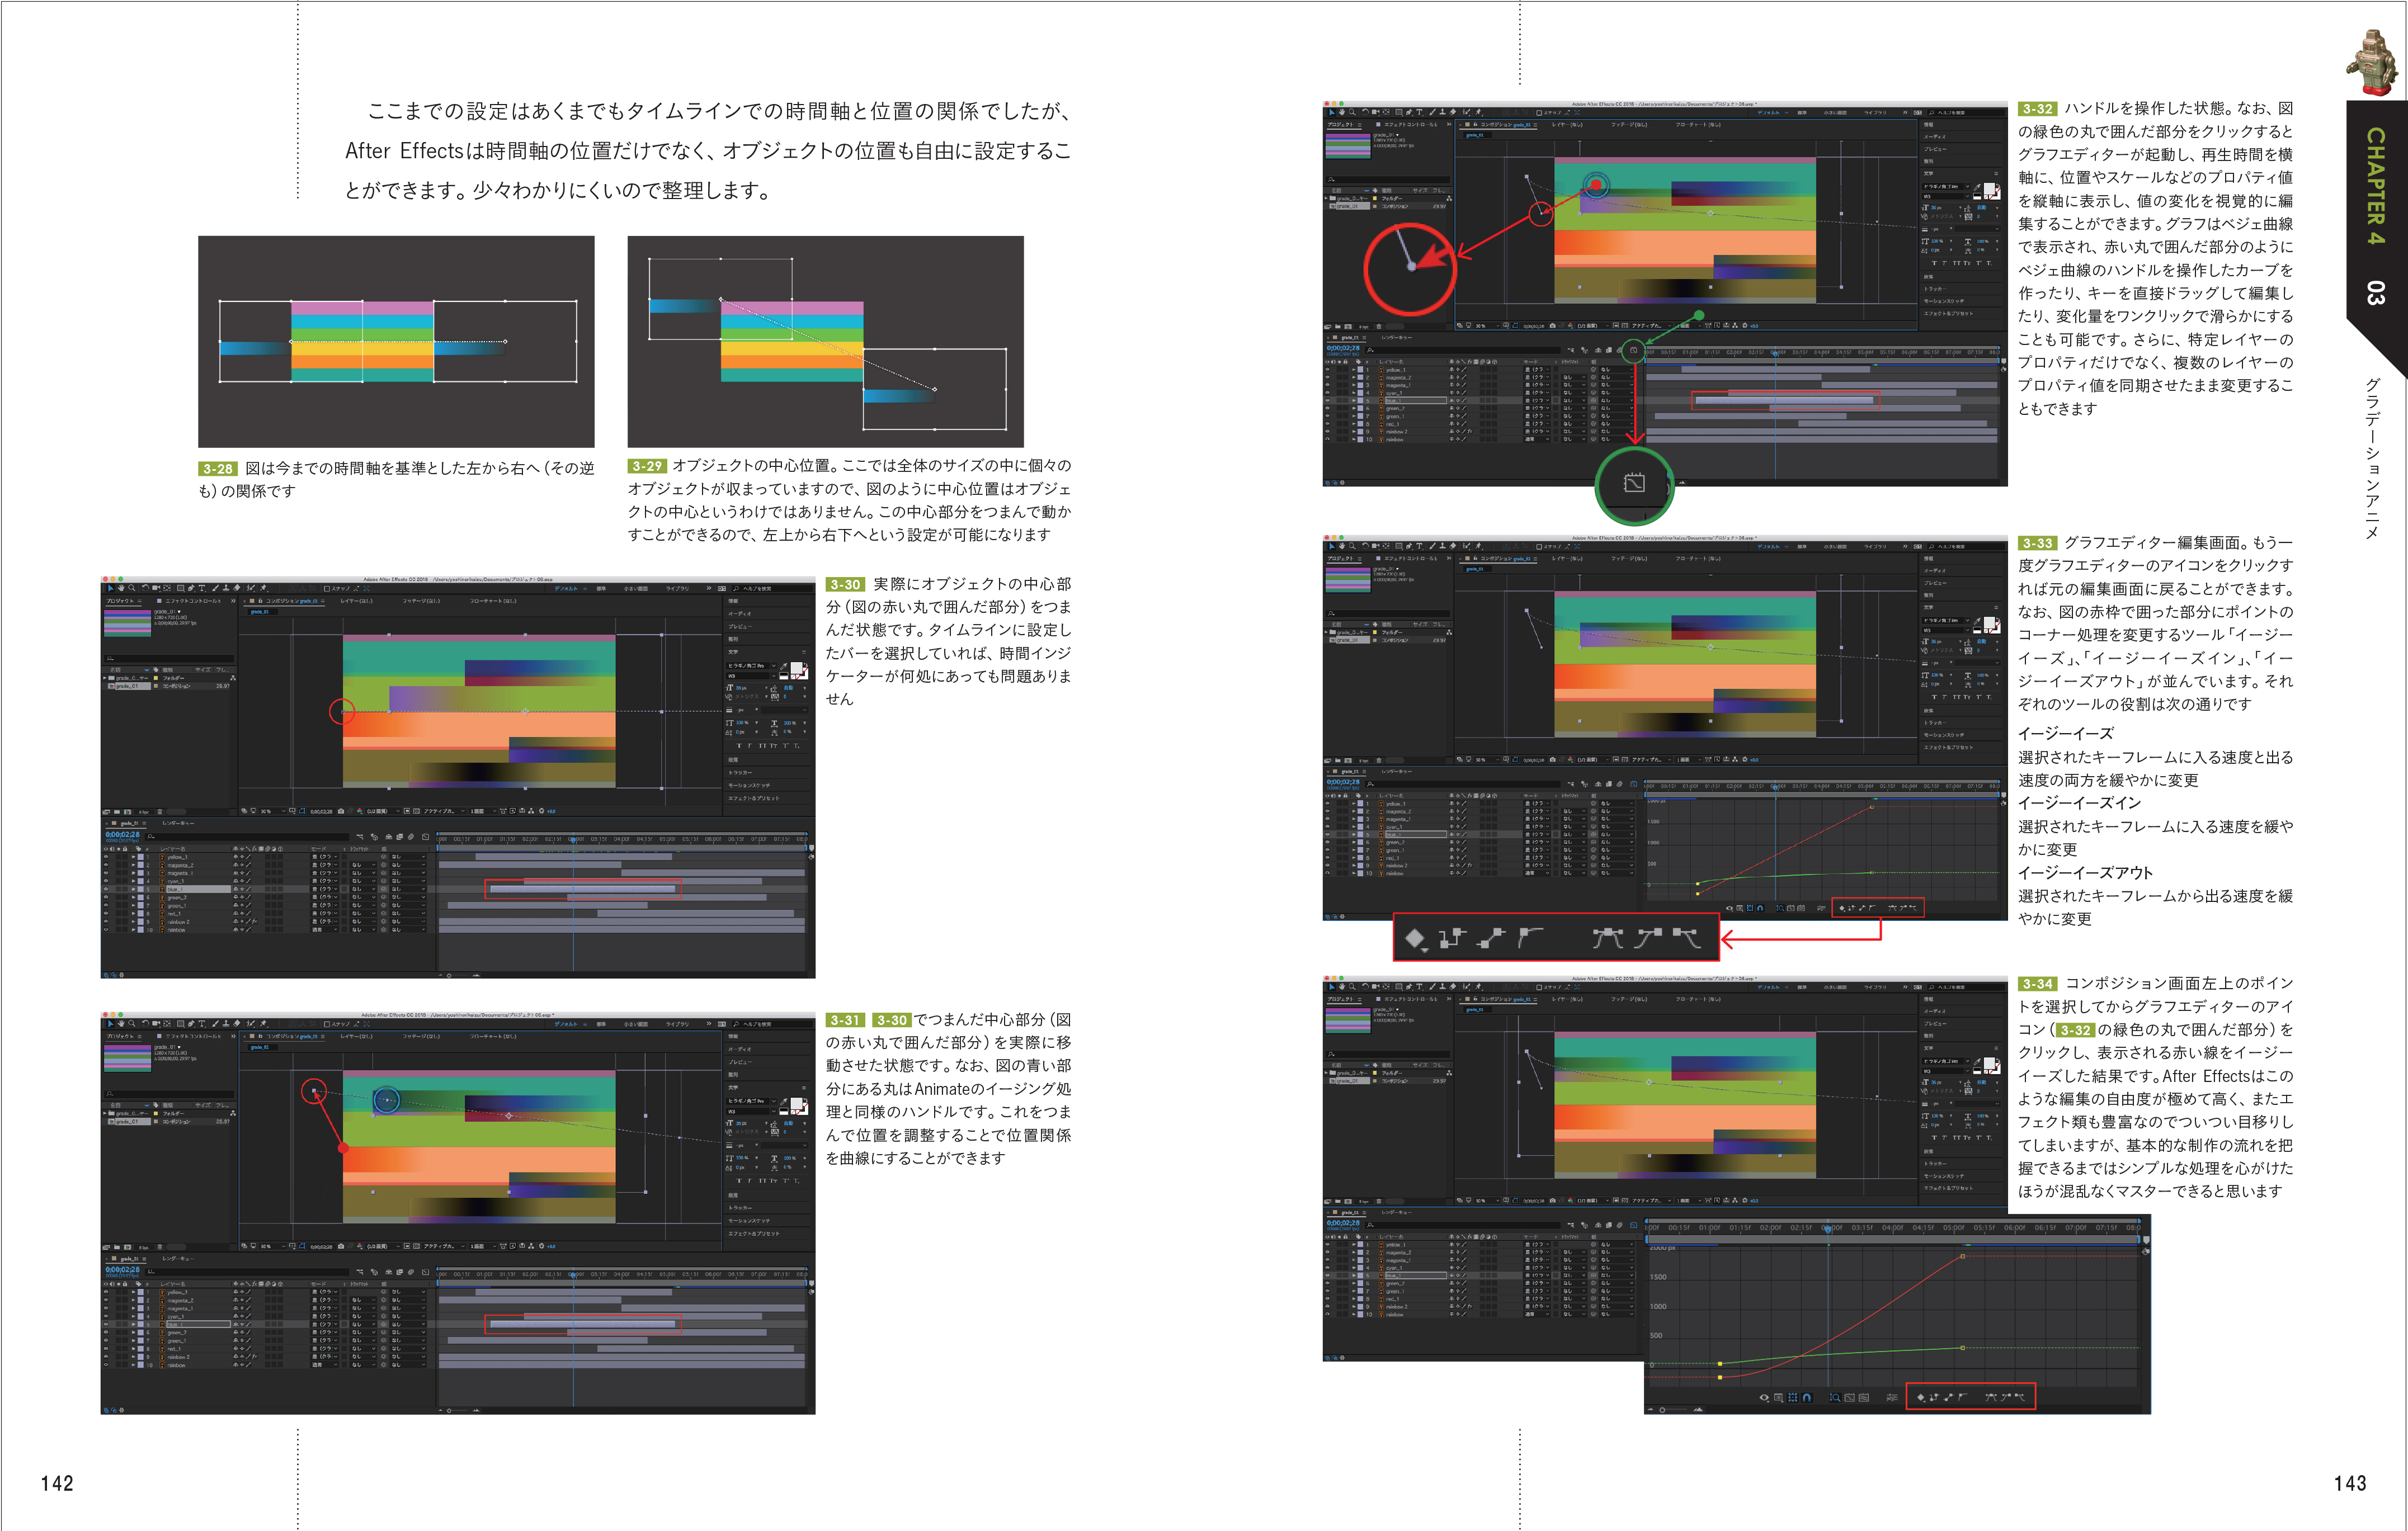 04_AfterEffects_0521.indd